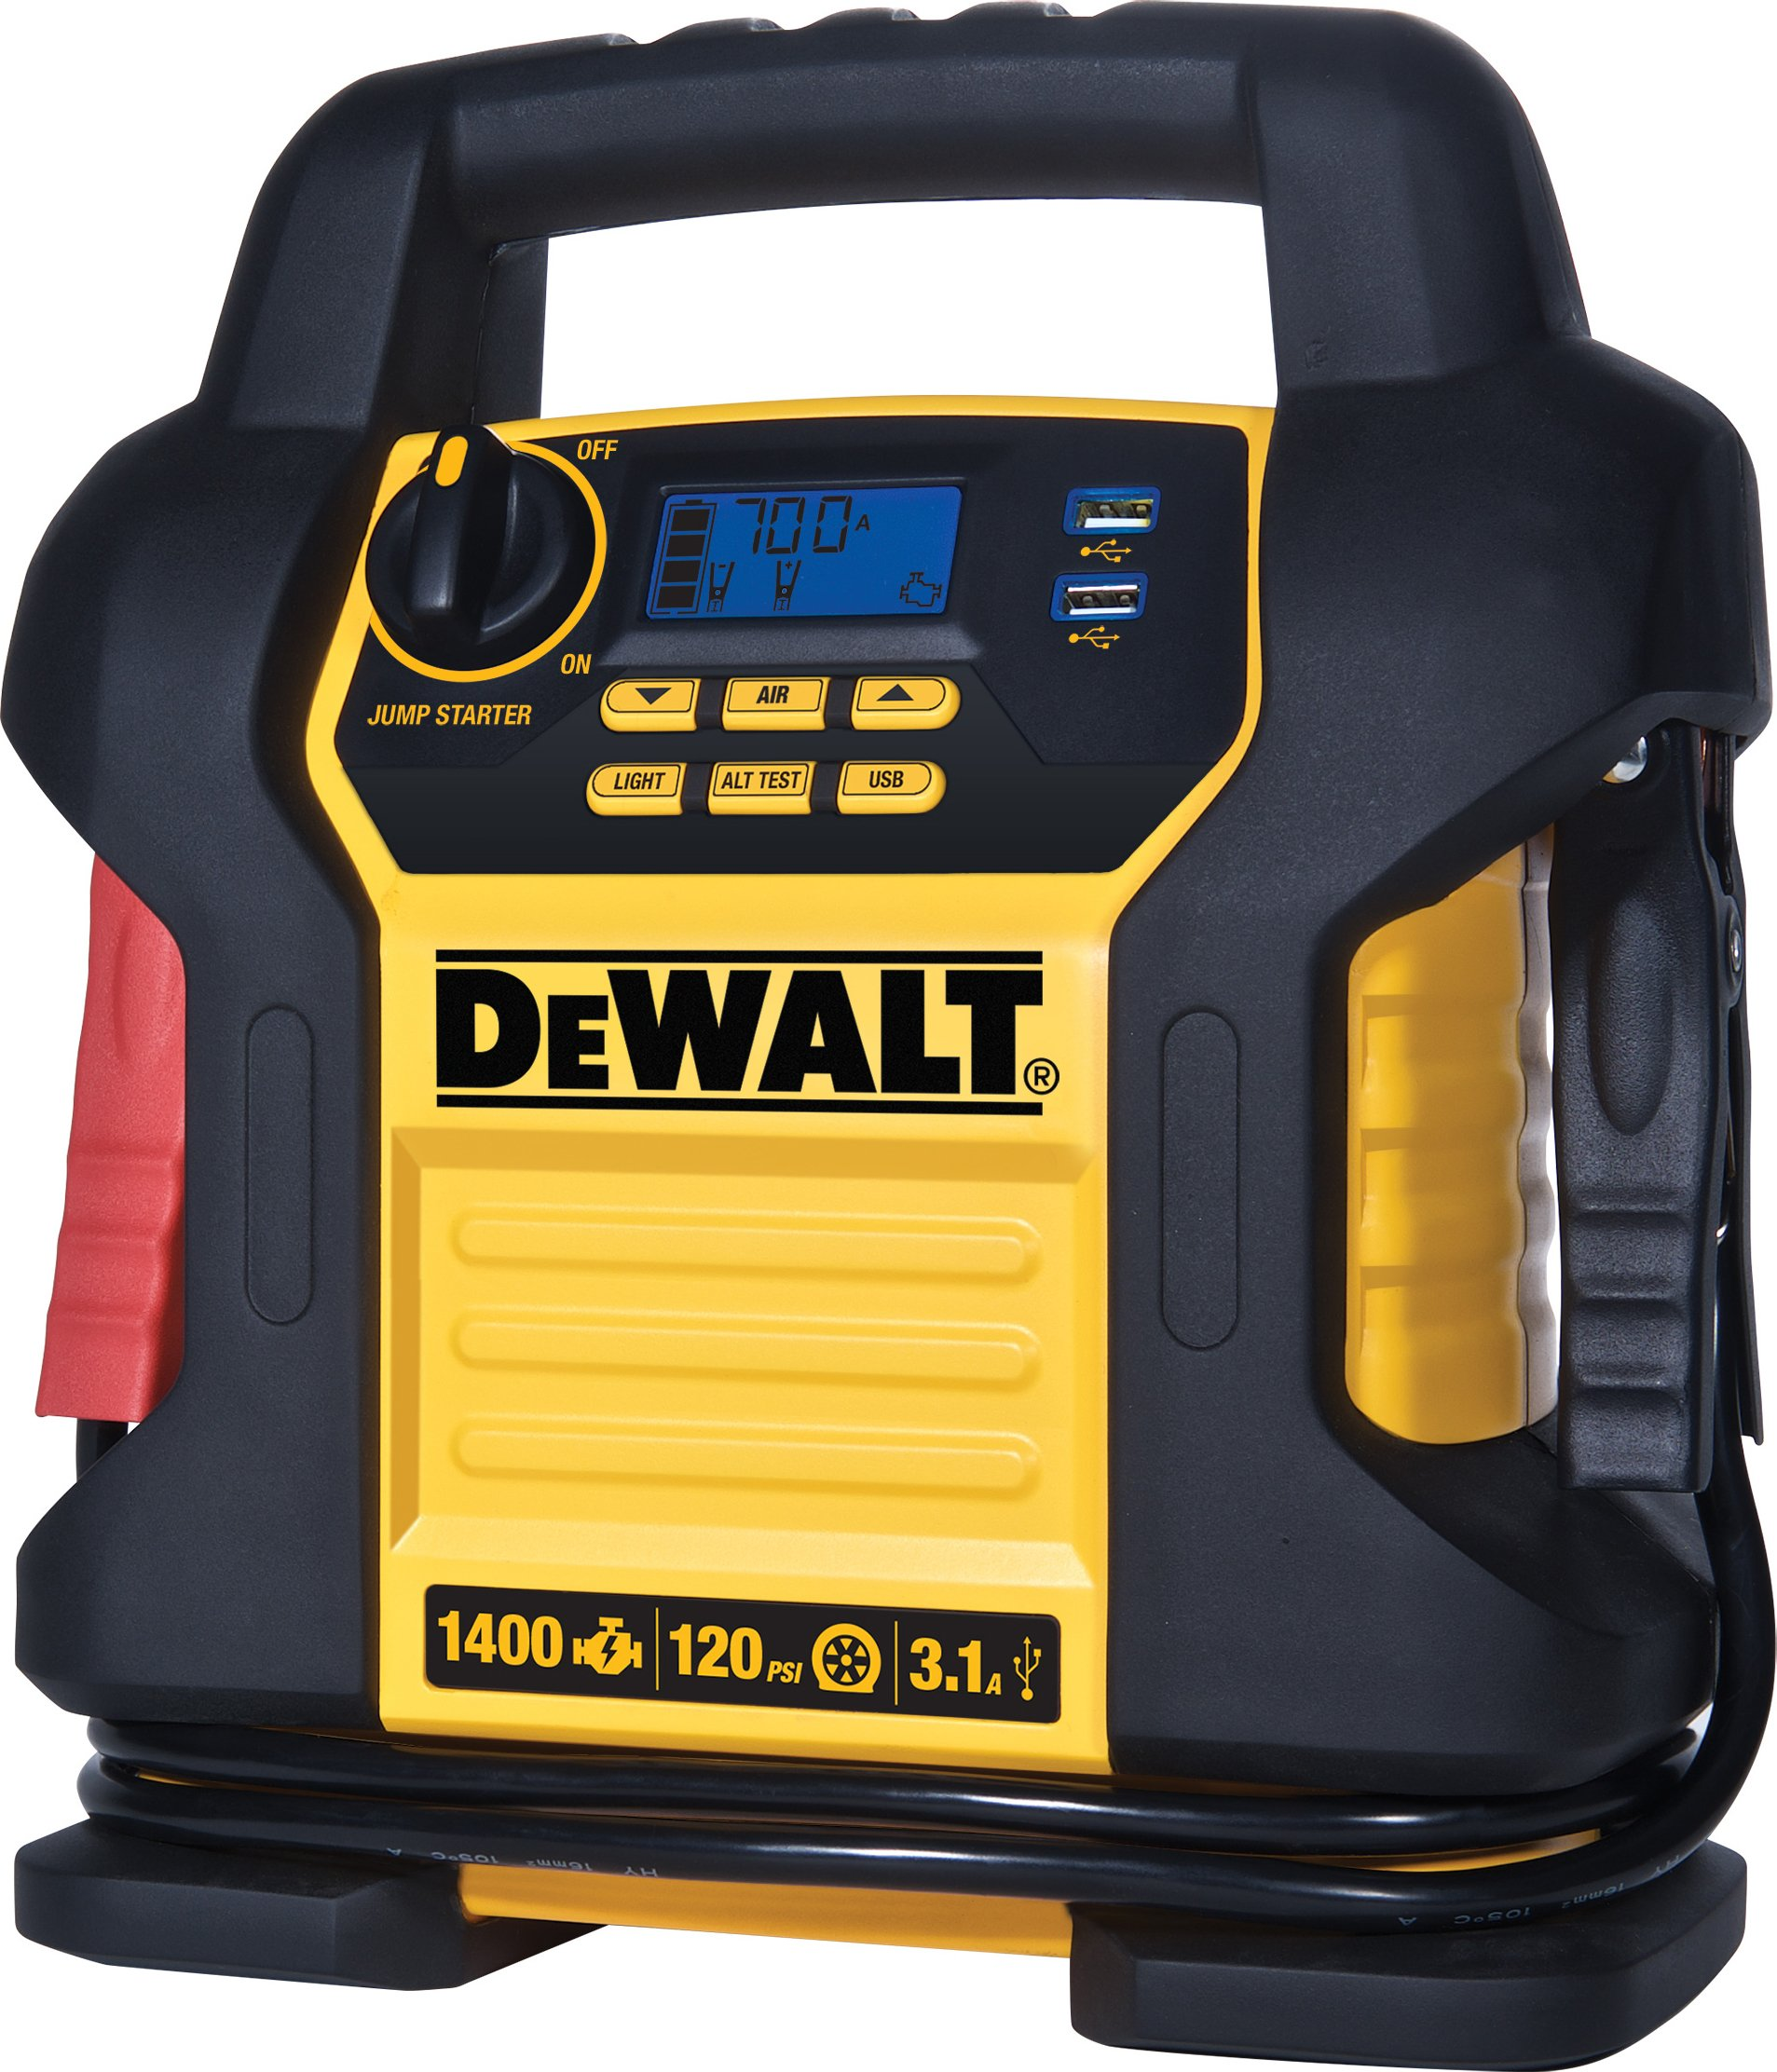 DEWALT DXAEJ14 Digital Portable Power Station Jump Starter: 1400 Peak/700 Instant Amps, 120 PSI Digital